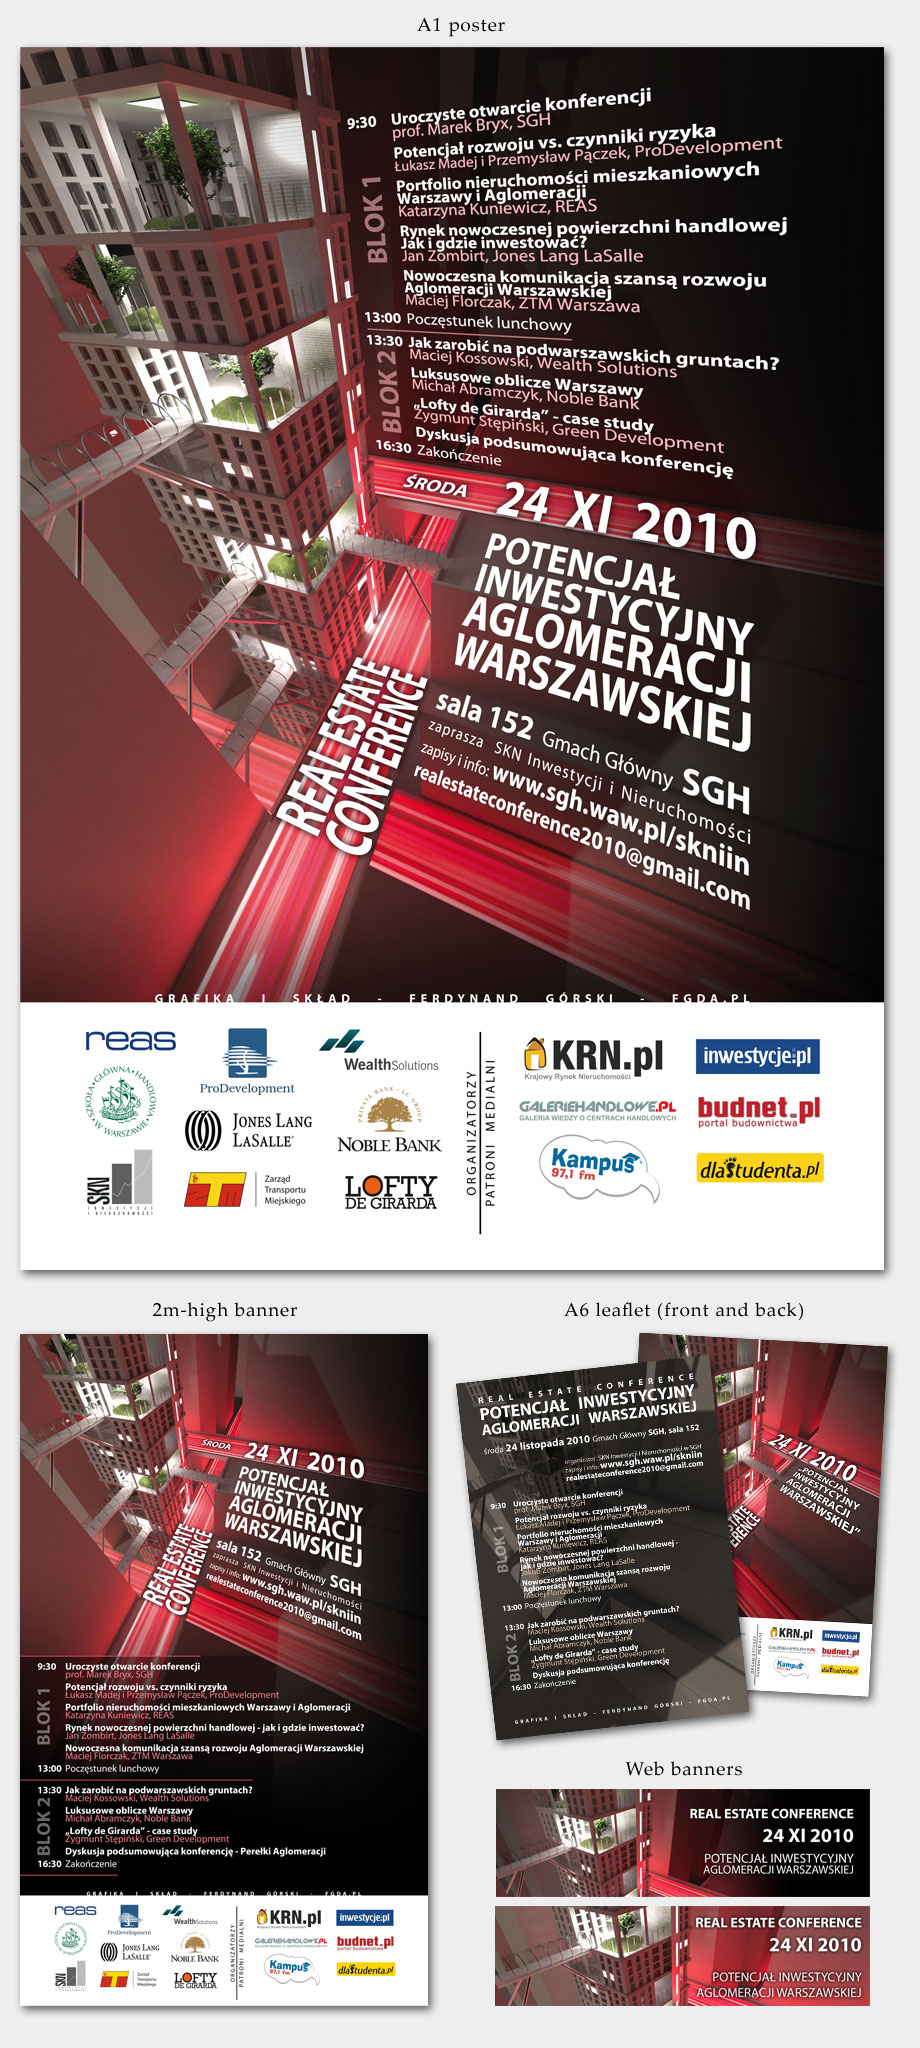 Real Estate Conference 2010 graphics